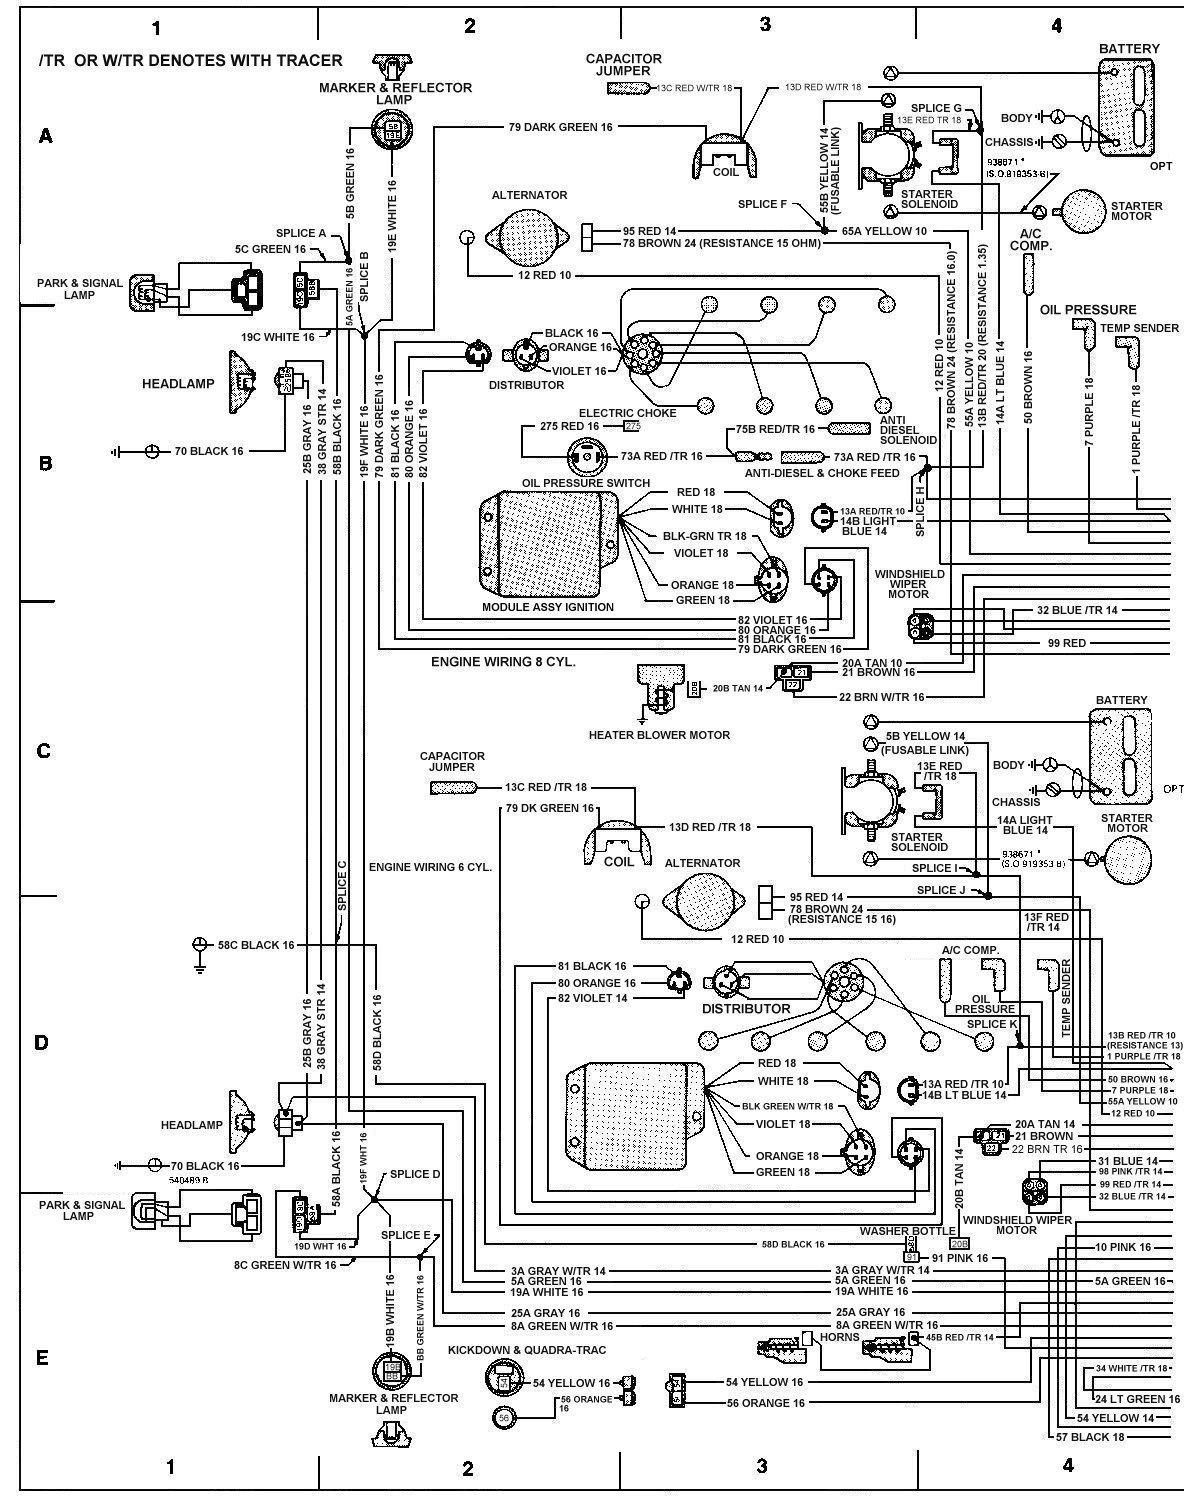 [DIAGRAM] 78 Cj7 Wiring Diagram FULL Version HD Quality